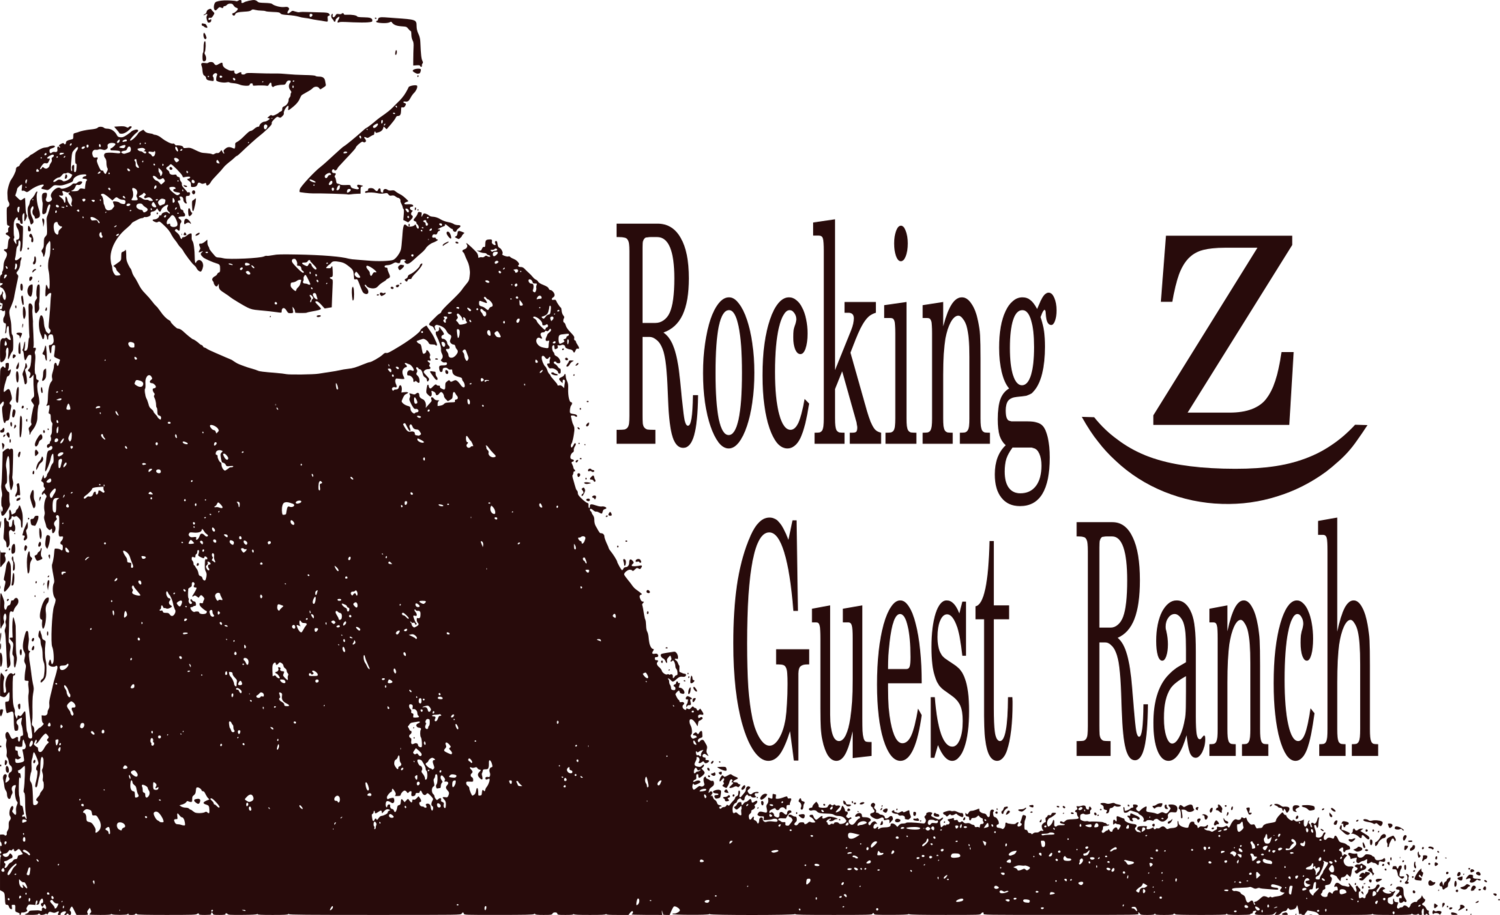 contact us rocking z guest ranch